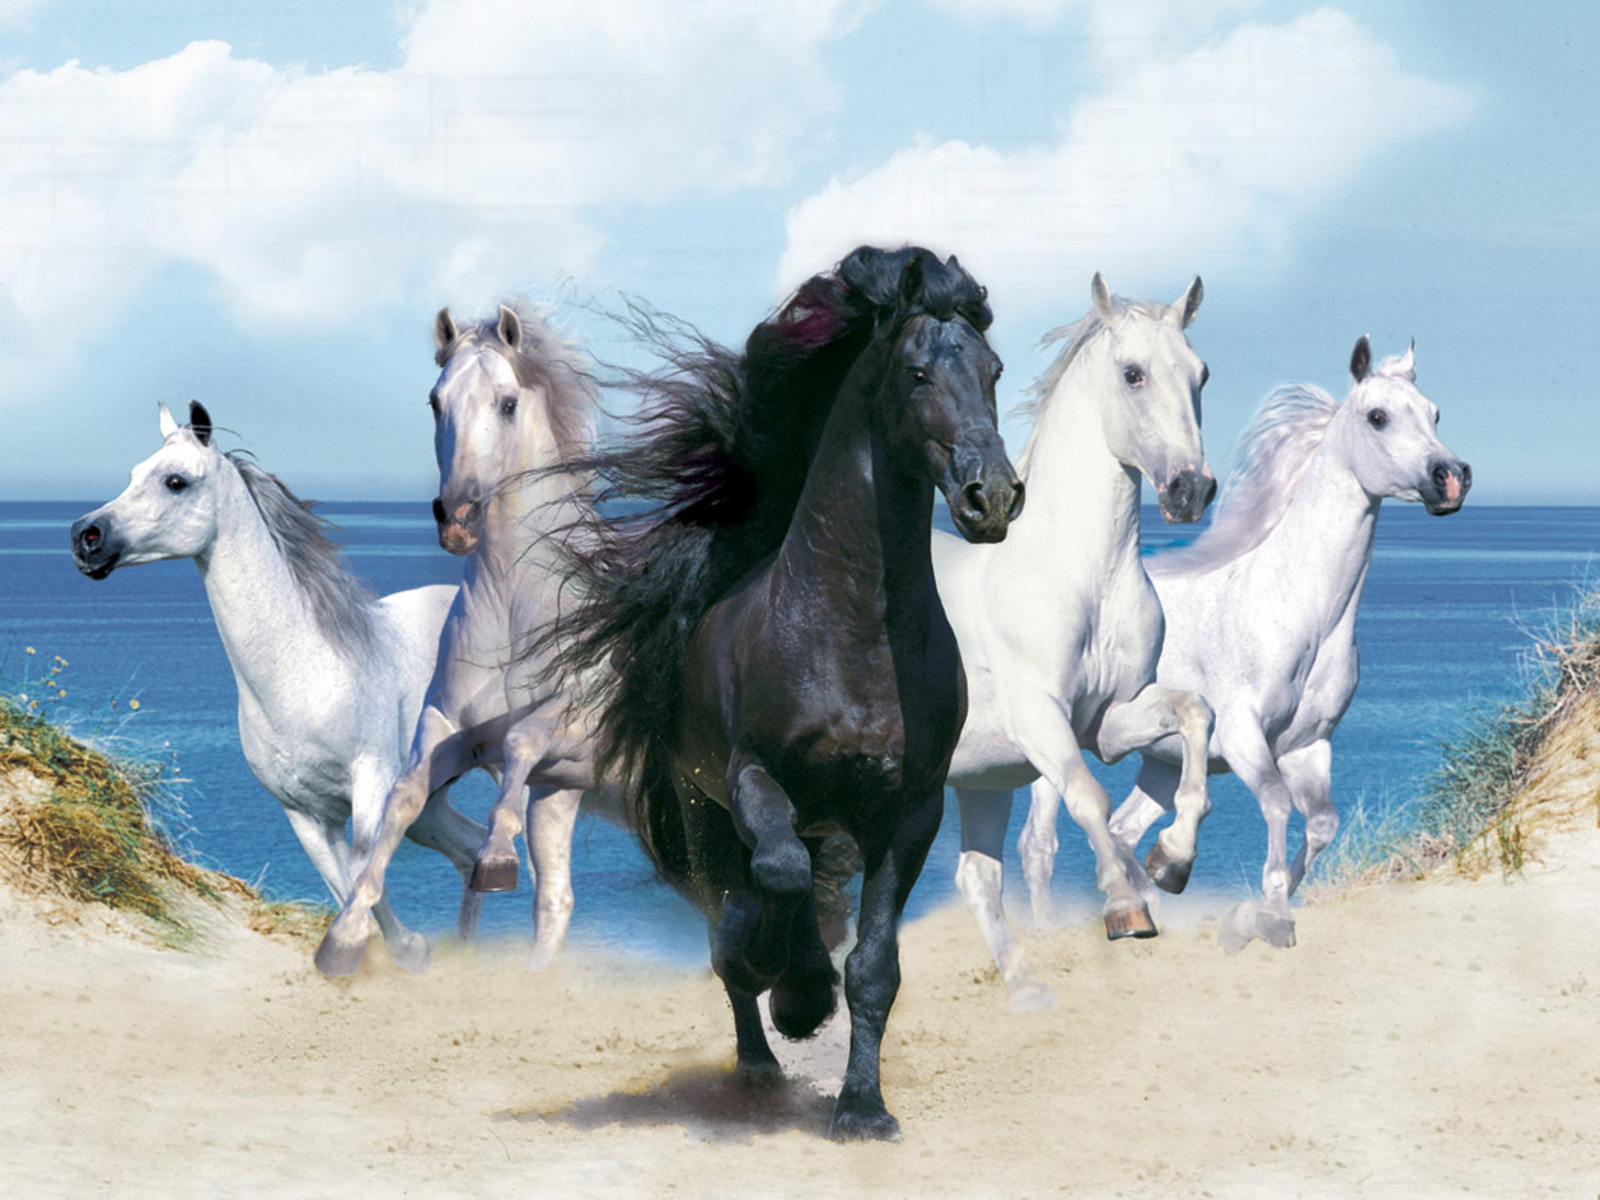 Animals wallpapers fantasy beautiful horses